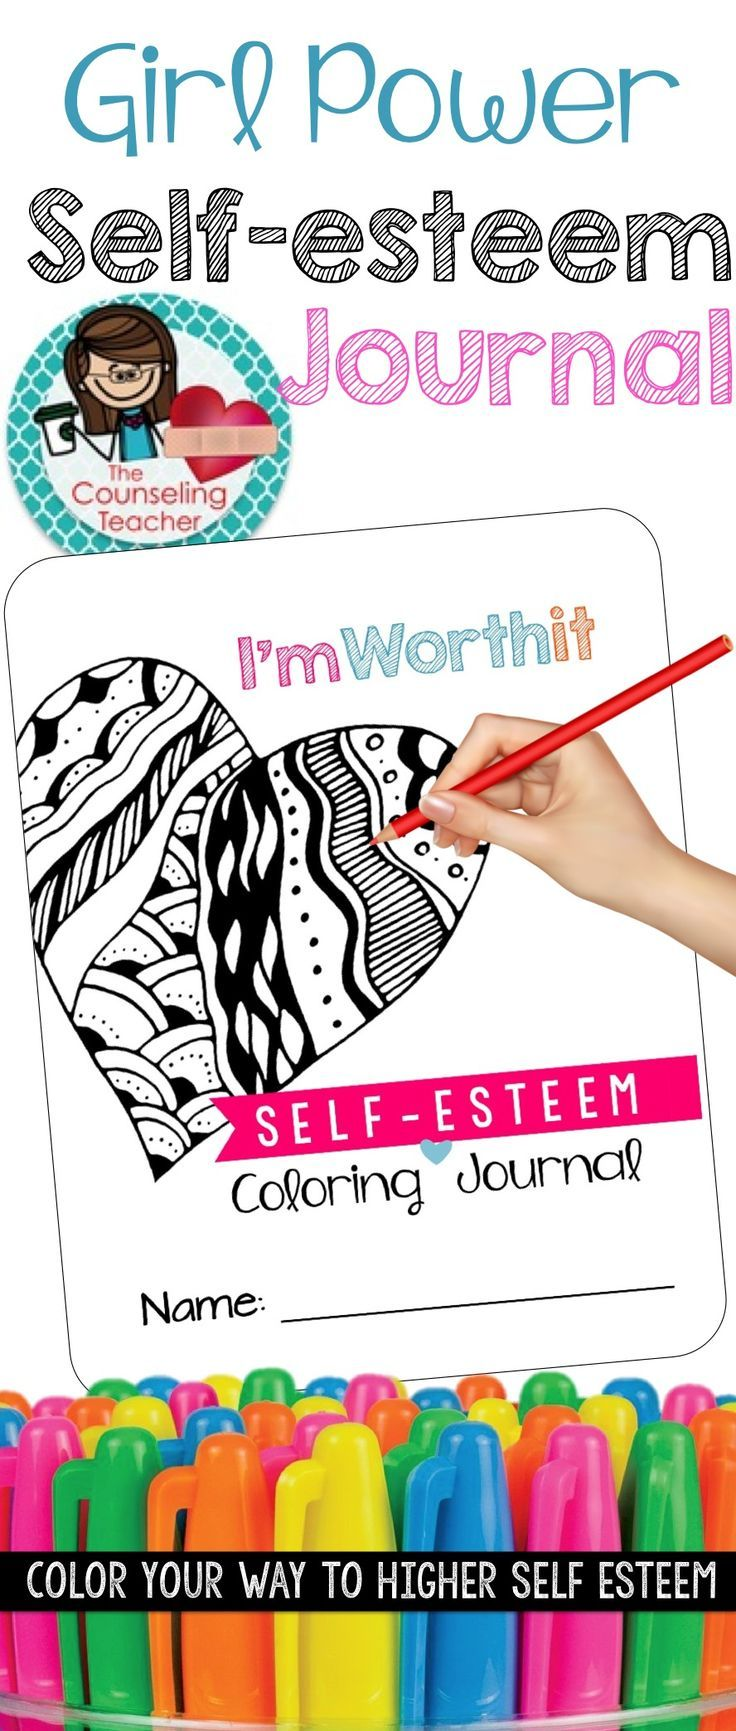 This self-esteem activity pack includes a positive affirmations themed coloring book and a daily happies journal.